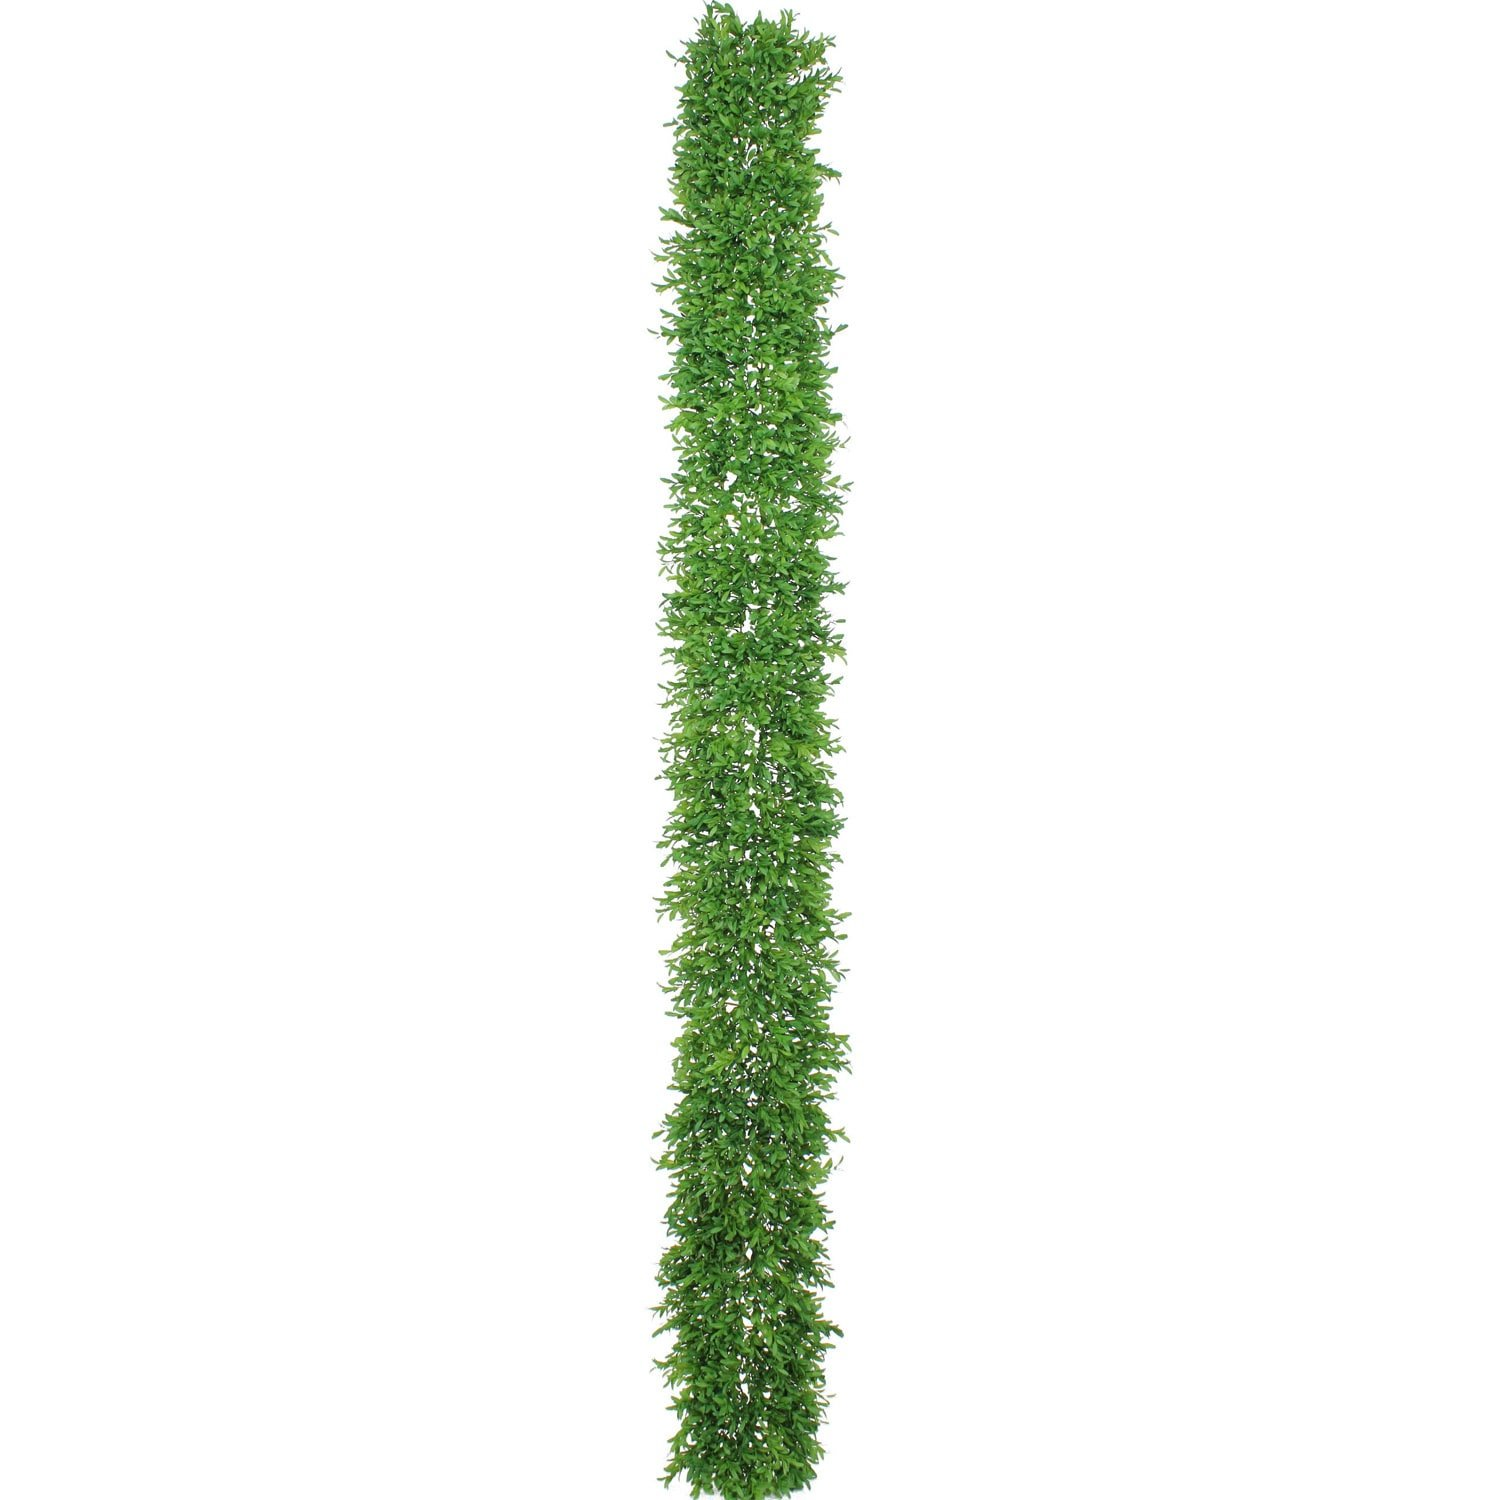 Teters Floral Products Collection 72-inch Faux Boxwood Table Runner (2-Pack) Premade, 2 Piece